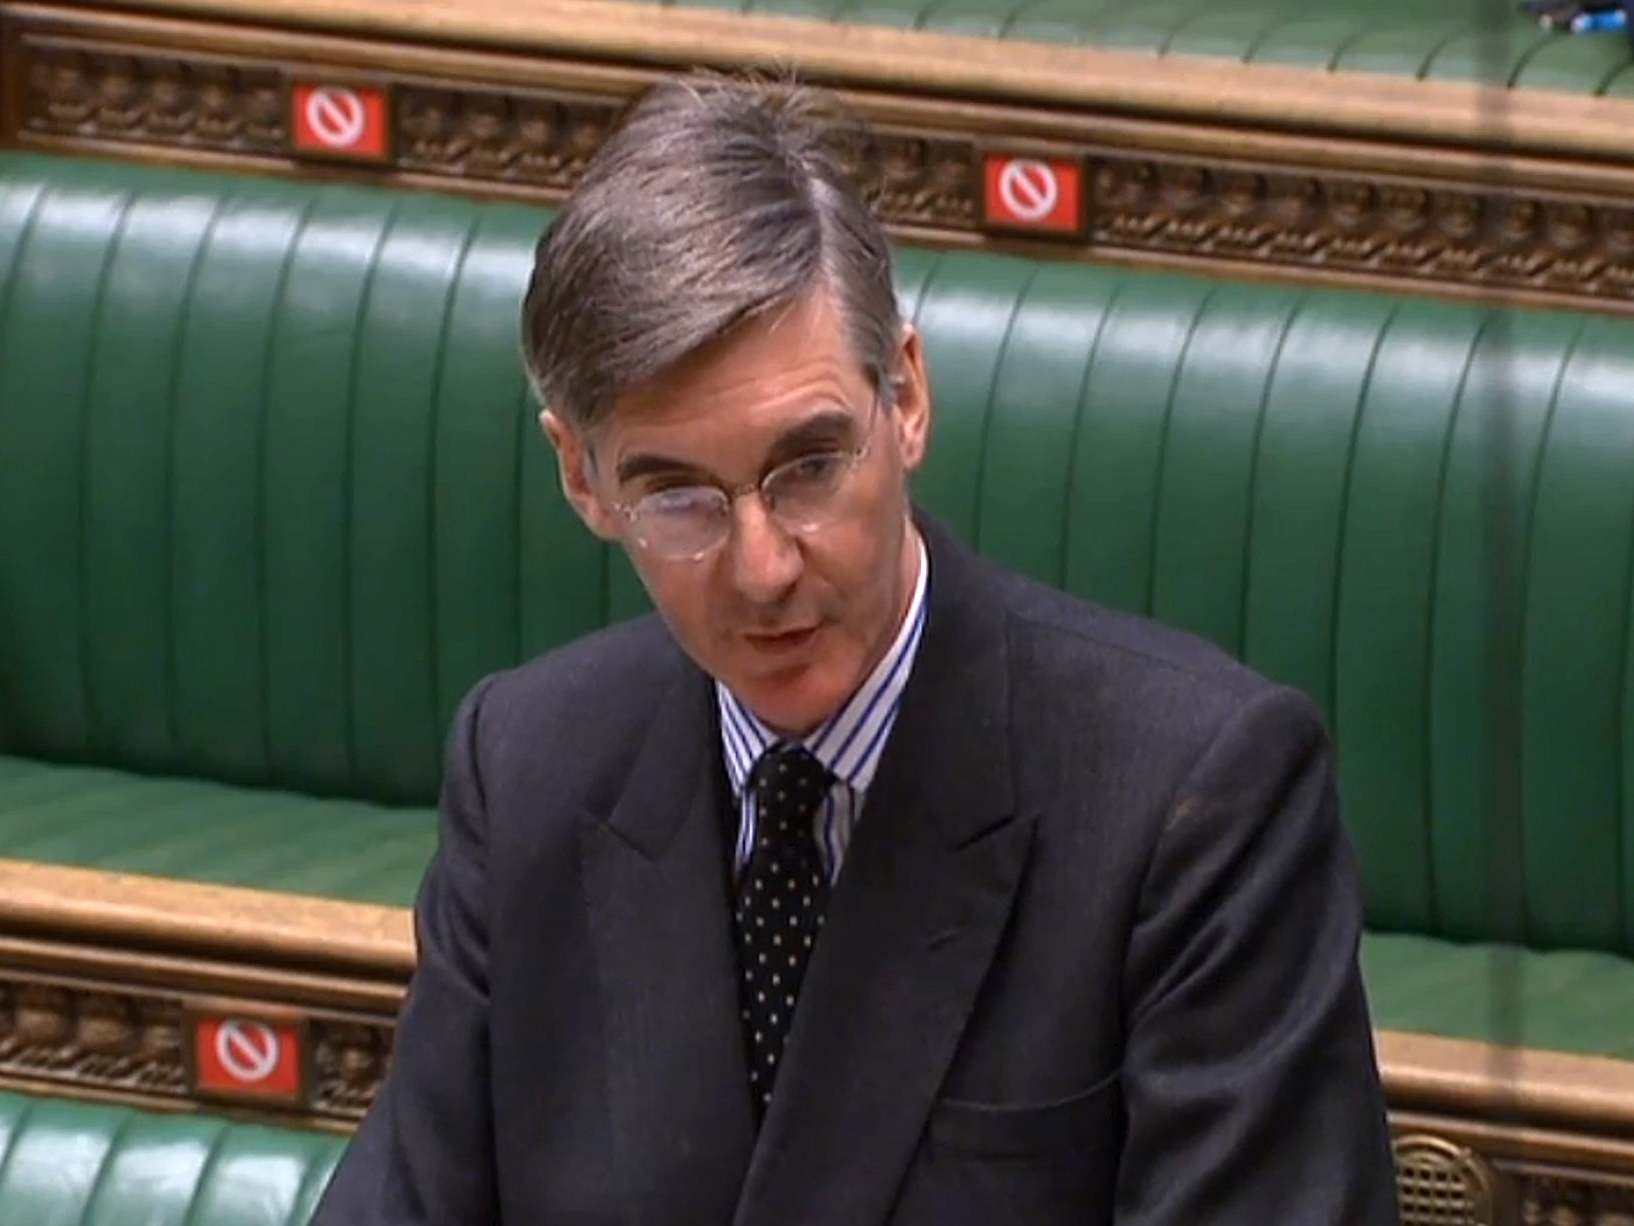 'Parliament must set an example': Jacob Rees-Mogg criticised for suggesting MPs should return to Westminster within weeks